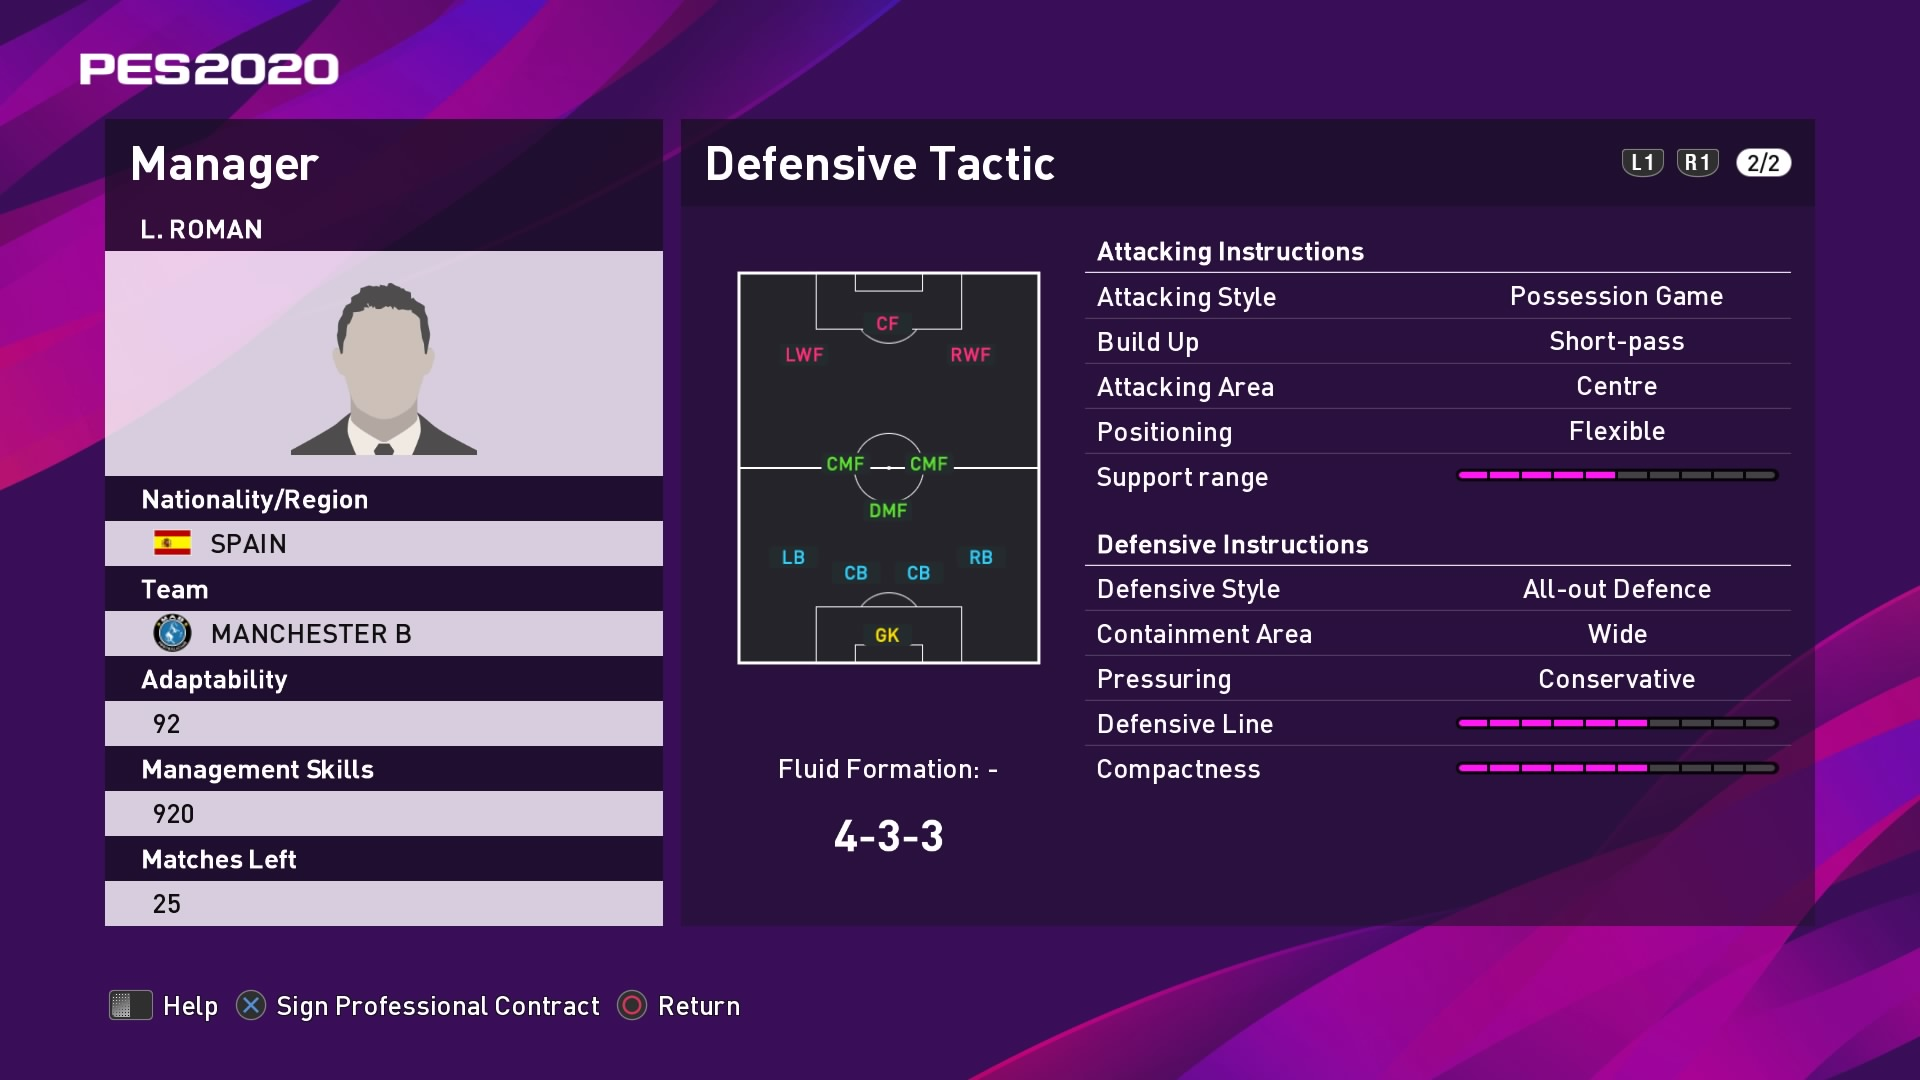 L. Roman (2) (Pep Guardiola) Defensive Tactic in PES 2020 myClub